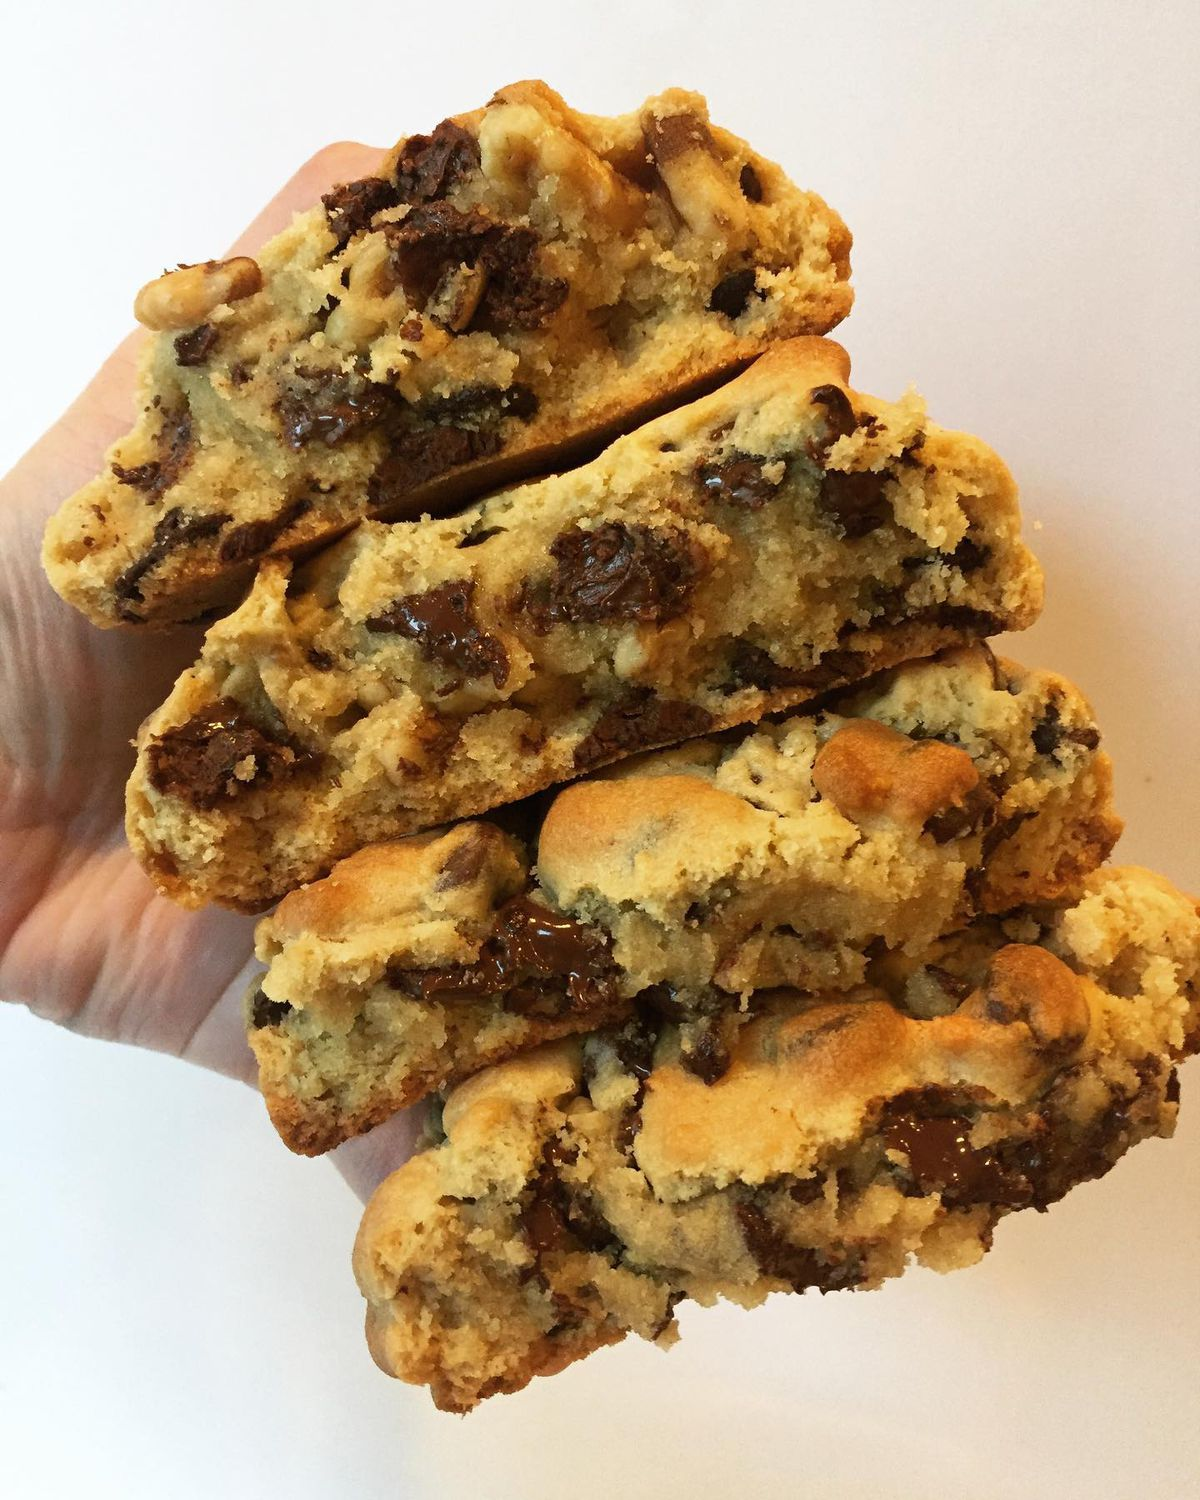 A stack of four cookies